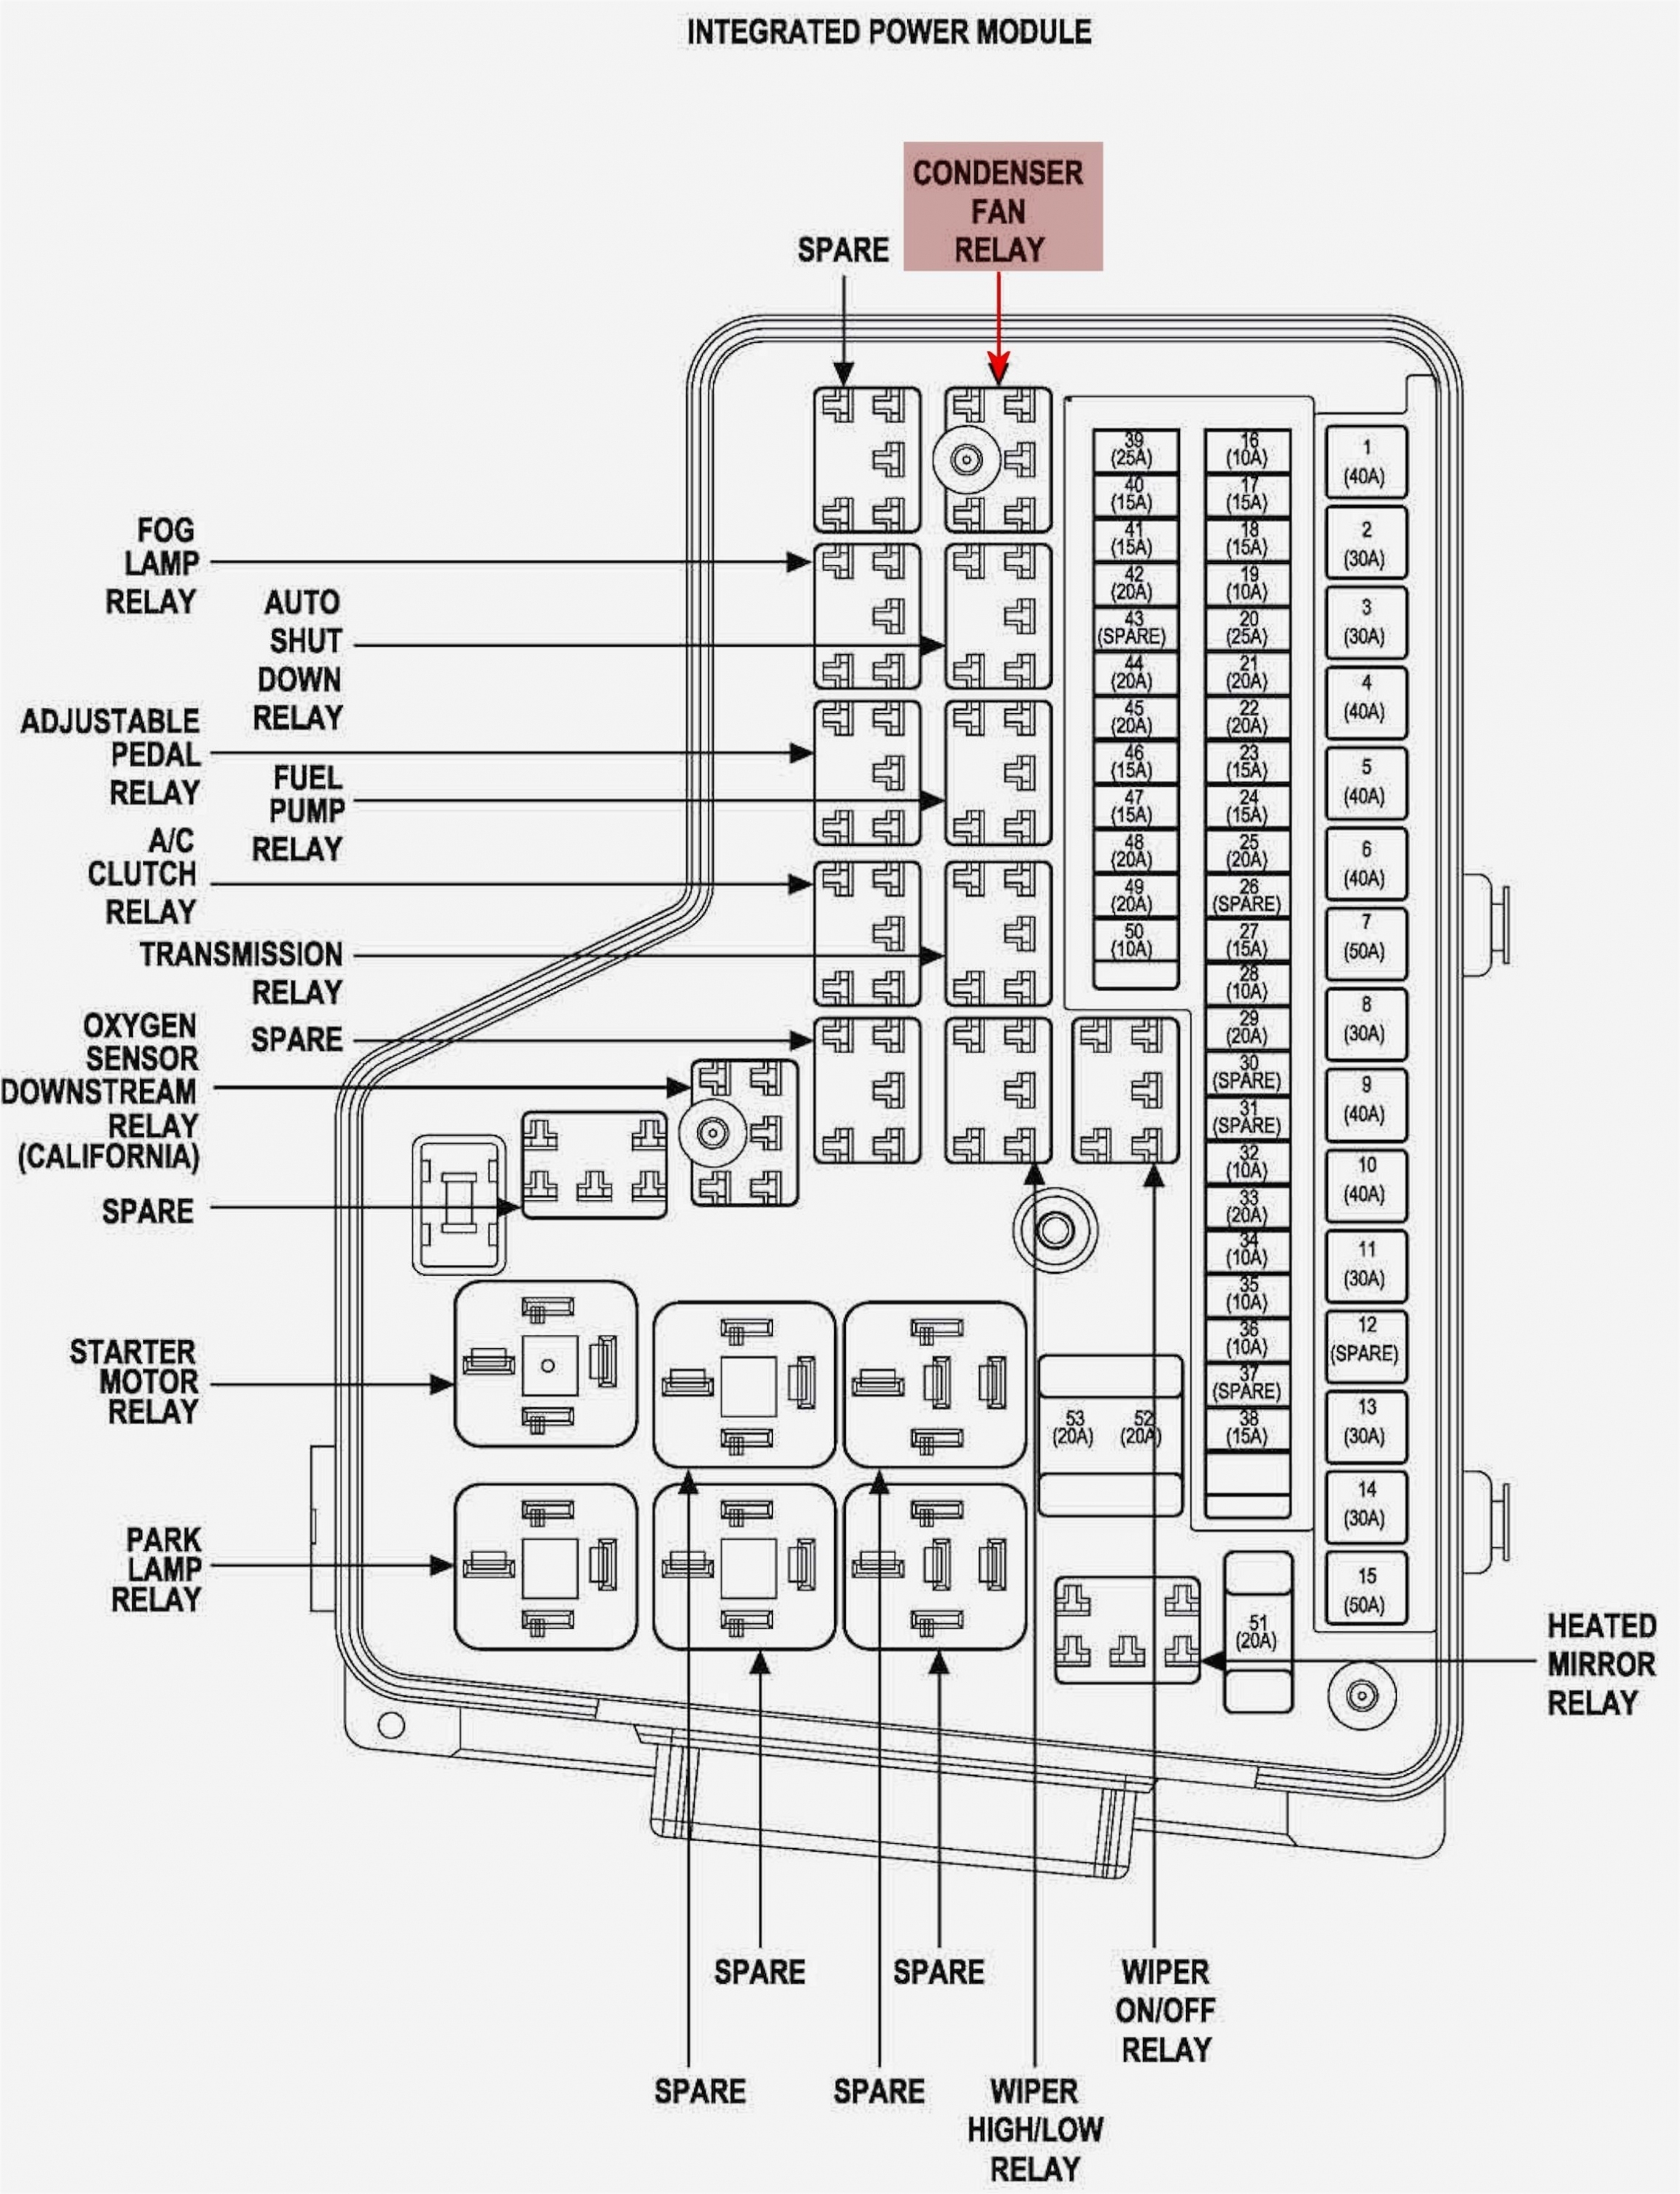 fuse box wiring diagram data wiring diagrams 2006 dodge ram 1500 fuse box diagram head light chrysler 300m fuse box diagram wiring diagram ebook 1989 ford bronco fuse box diagram fuse box wiring diagram